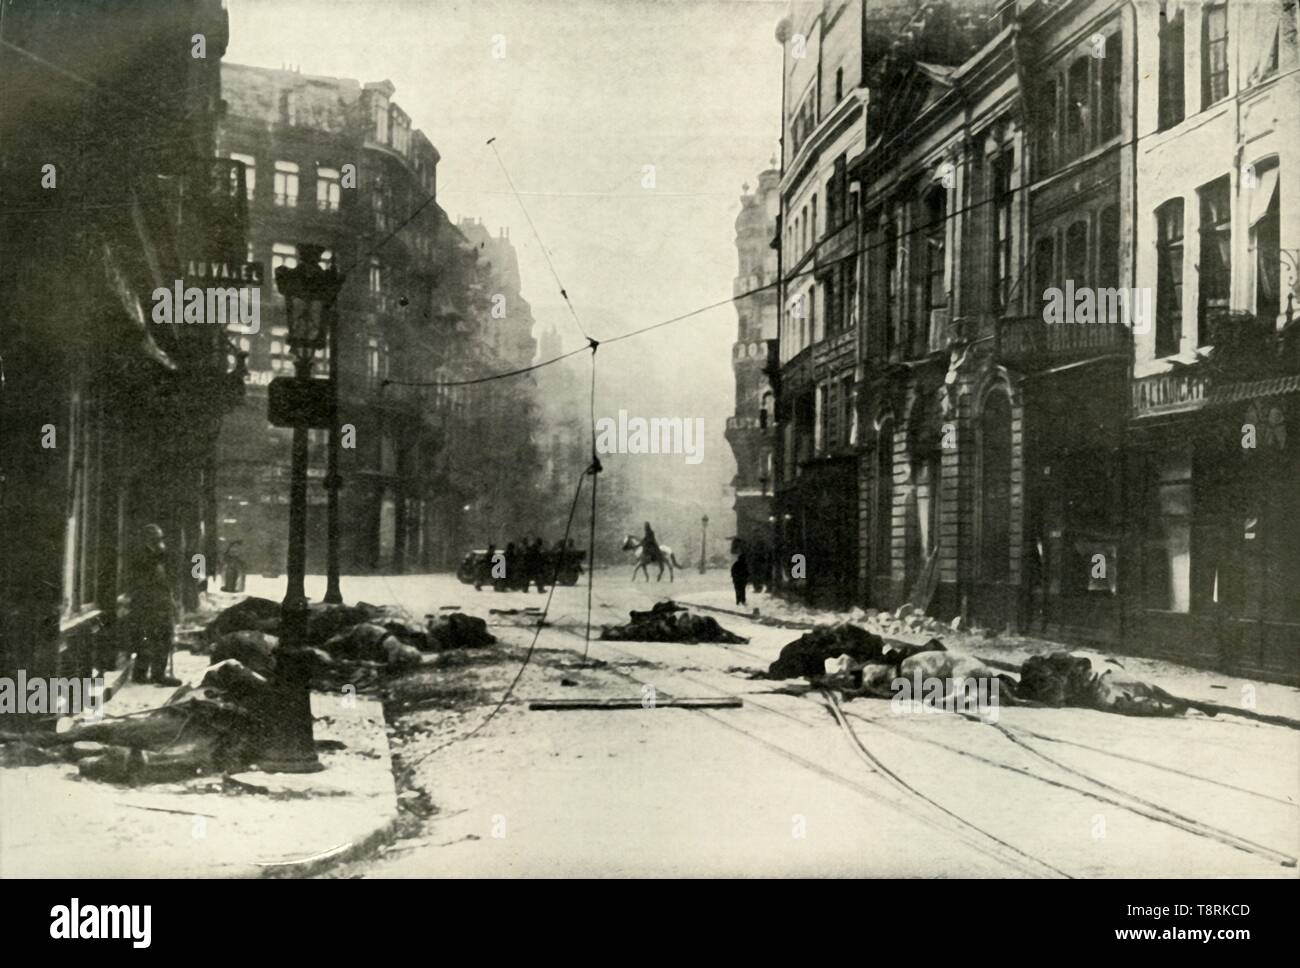 """'A Street in Lille', (1919). Dead horses in a street, scene from the First World War, 1914-1919: 'Photograph taken shortly after one of the battles in the manufacturing town of Lille [in northern France], engagements which were desperate in their intensity. The Germans occupied the town on August 21, and for months it became the object of bombardment and attack by the French and their endeavour to drive them out.' From """"The History of the Great European War: its causes and effects"""", Vol. III, by W. Stanley Macbean Knight. [Caxton Pulishing Company, Limited, London, 1919] - Stock Image"""